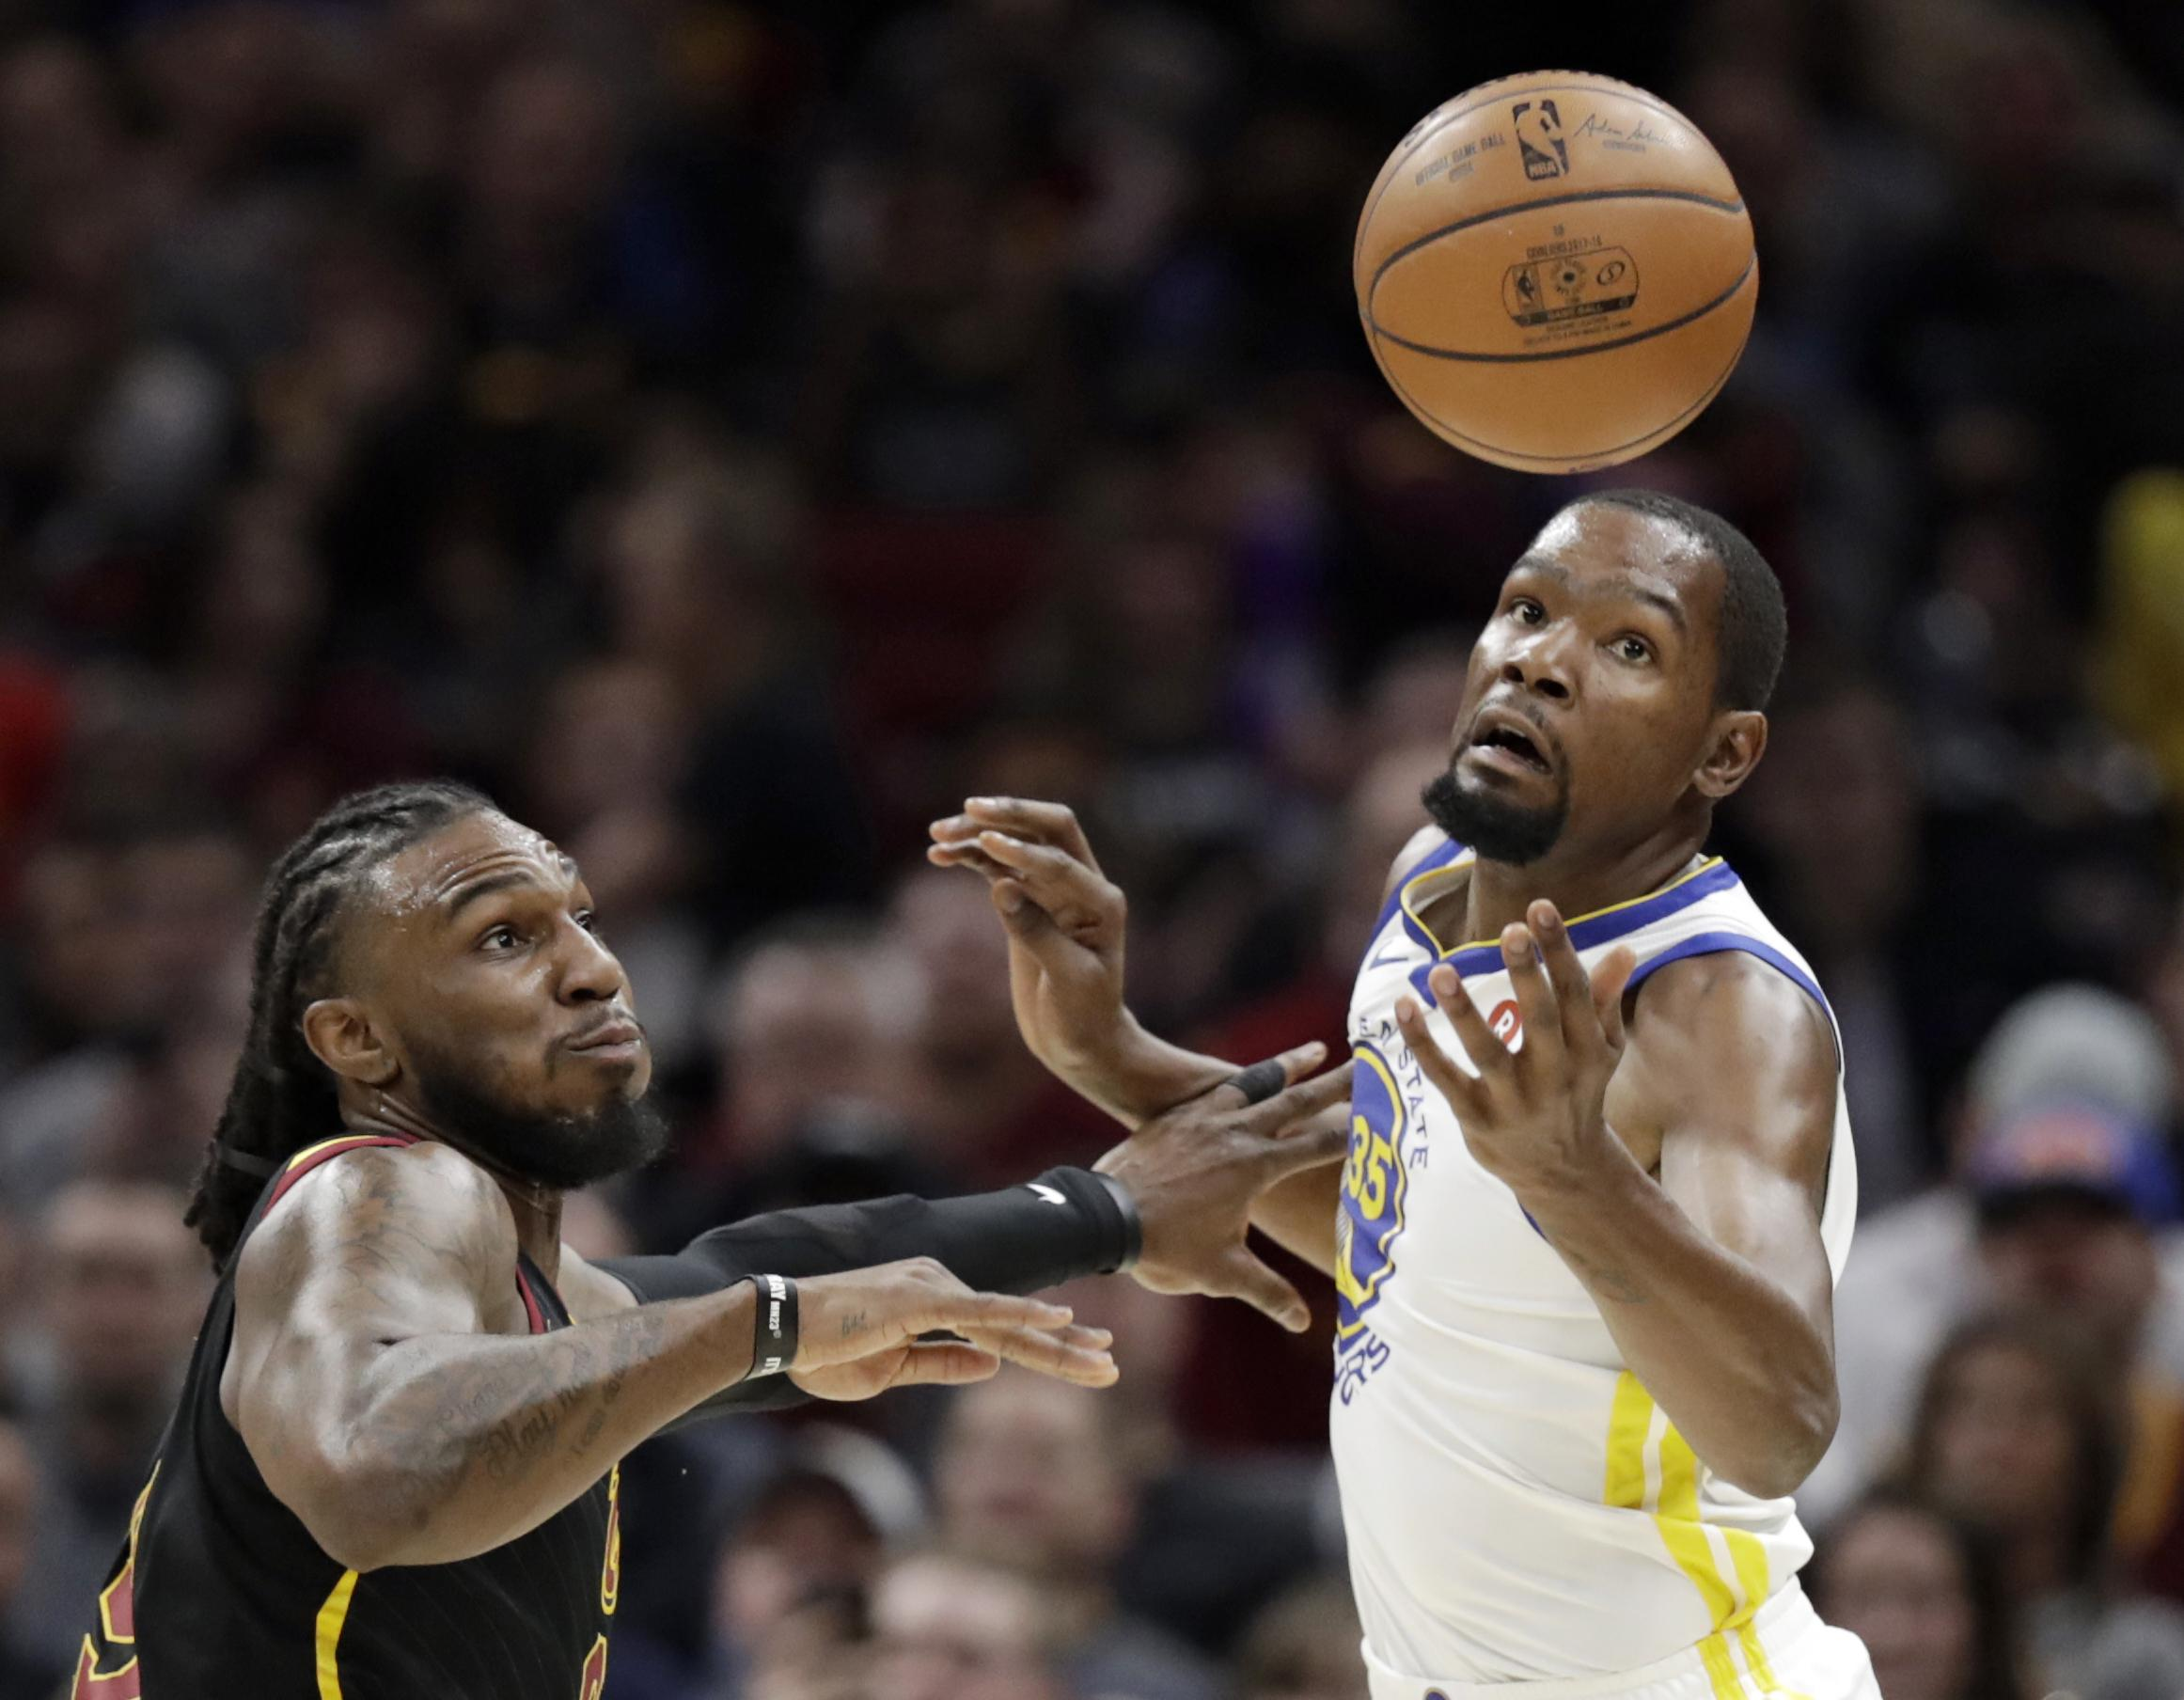 Clevelands Jae Crowder left knocks the ball loose from Golden States Kevin Durant on